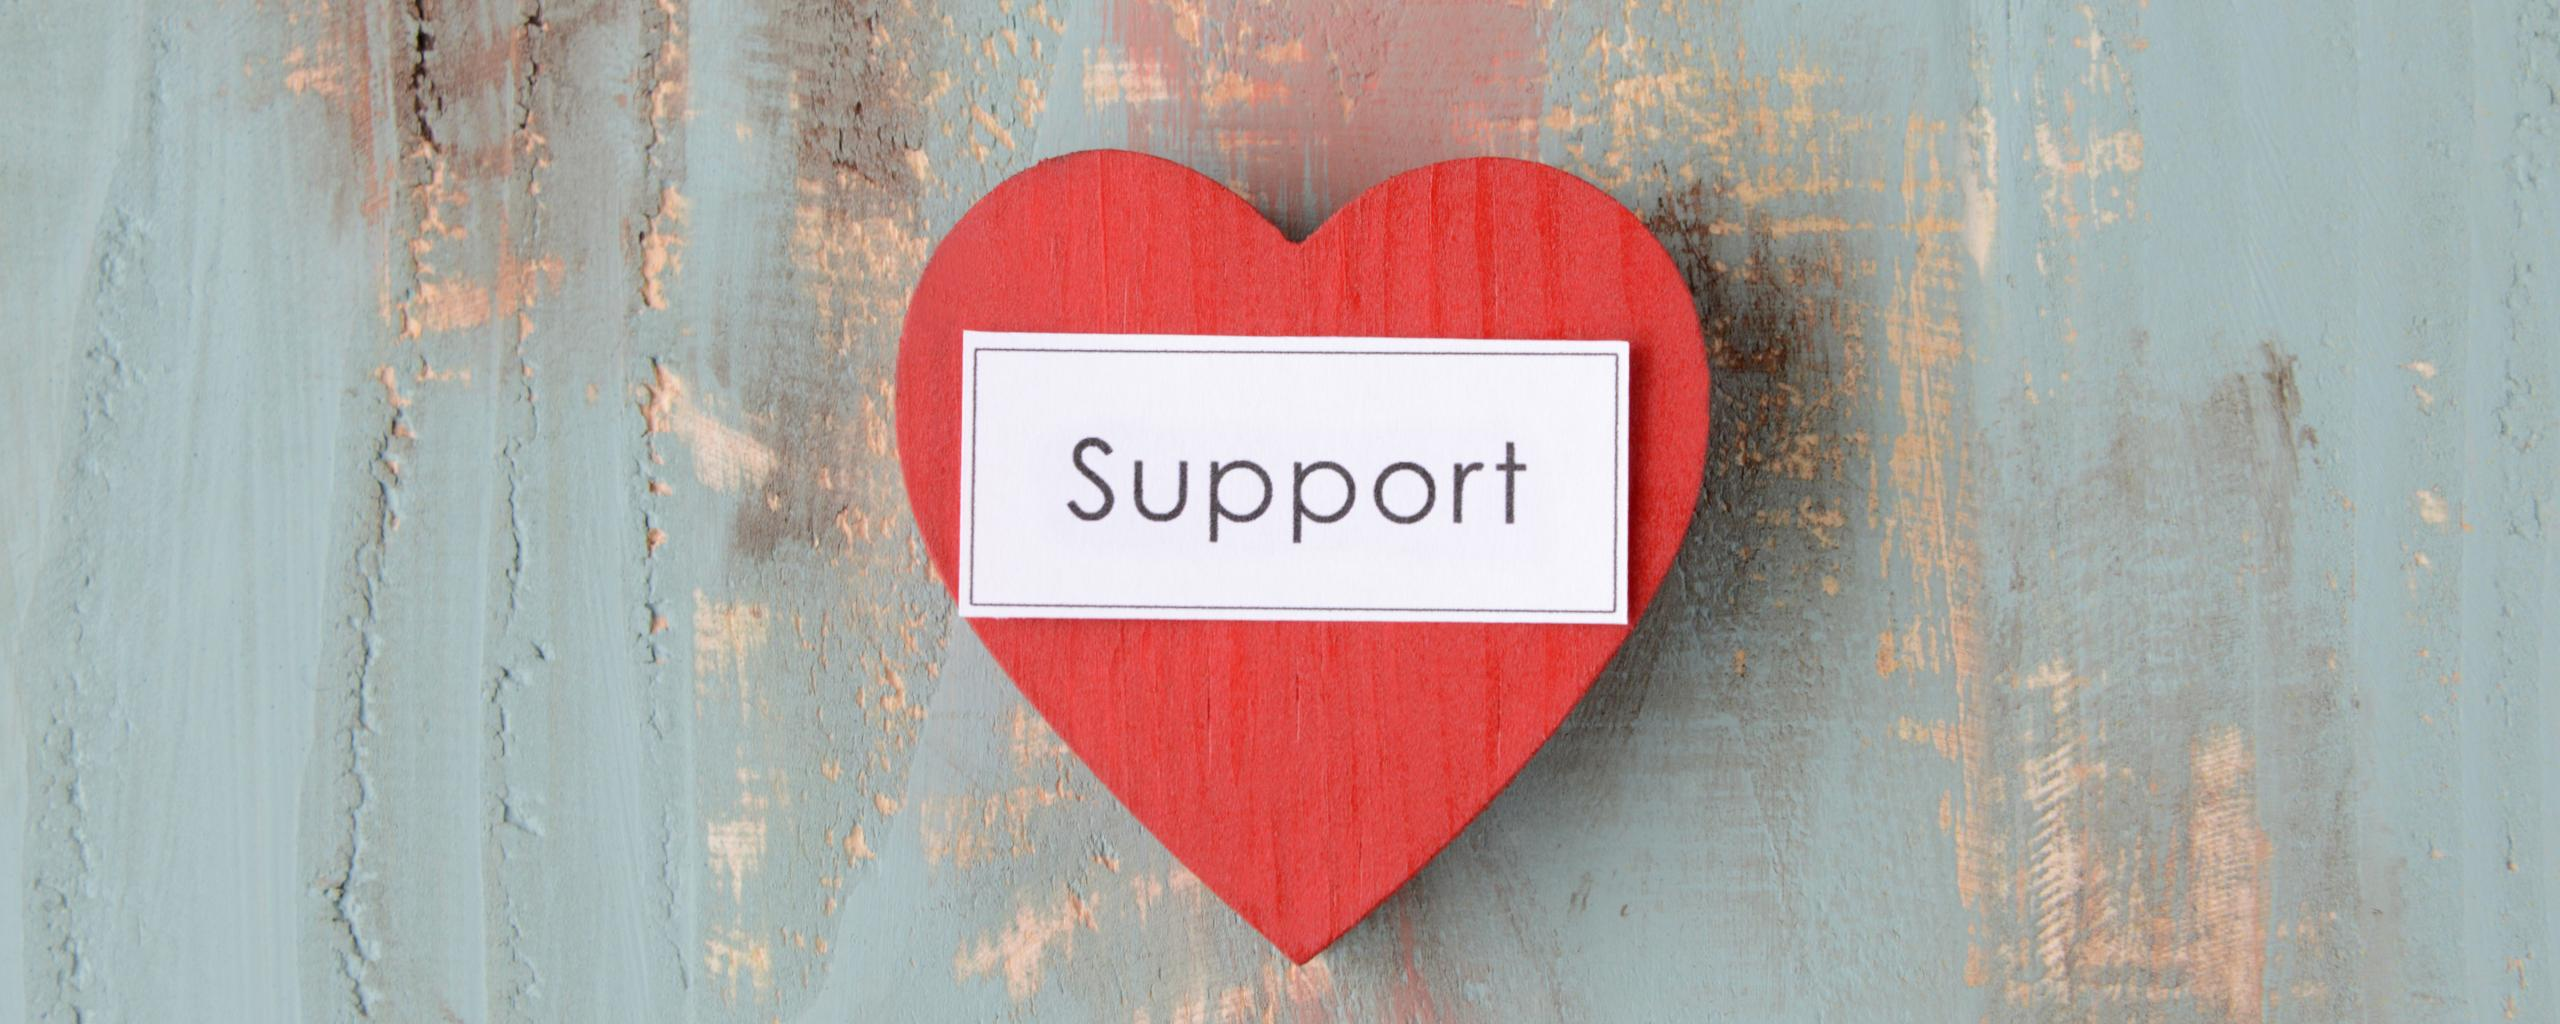 Mental Health and Emotional Support Image